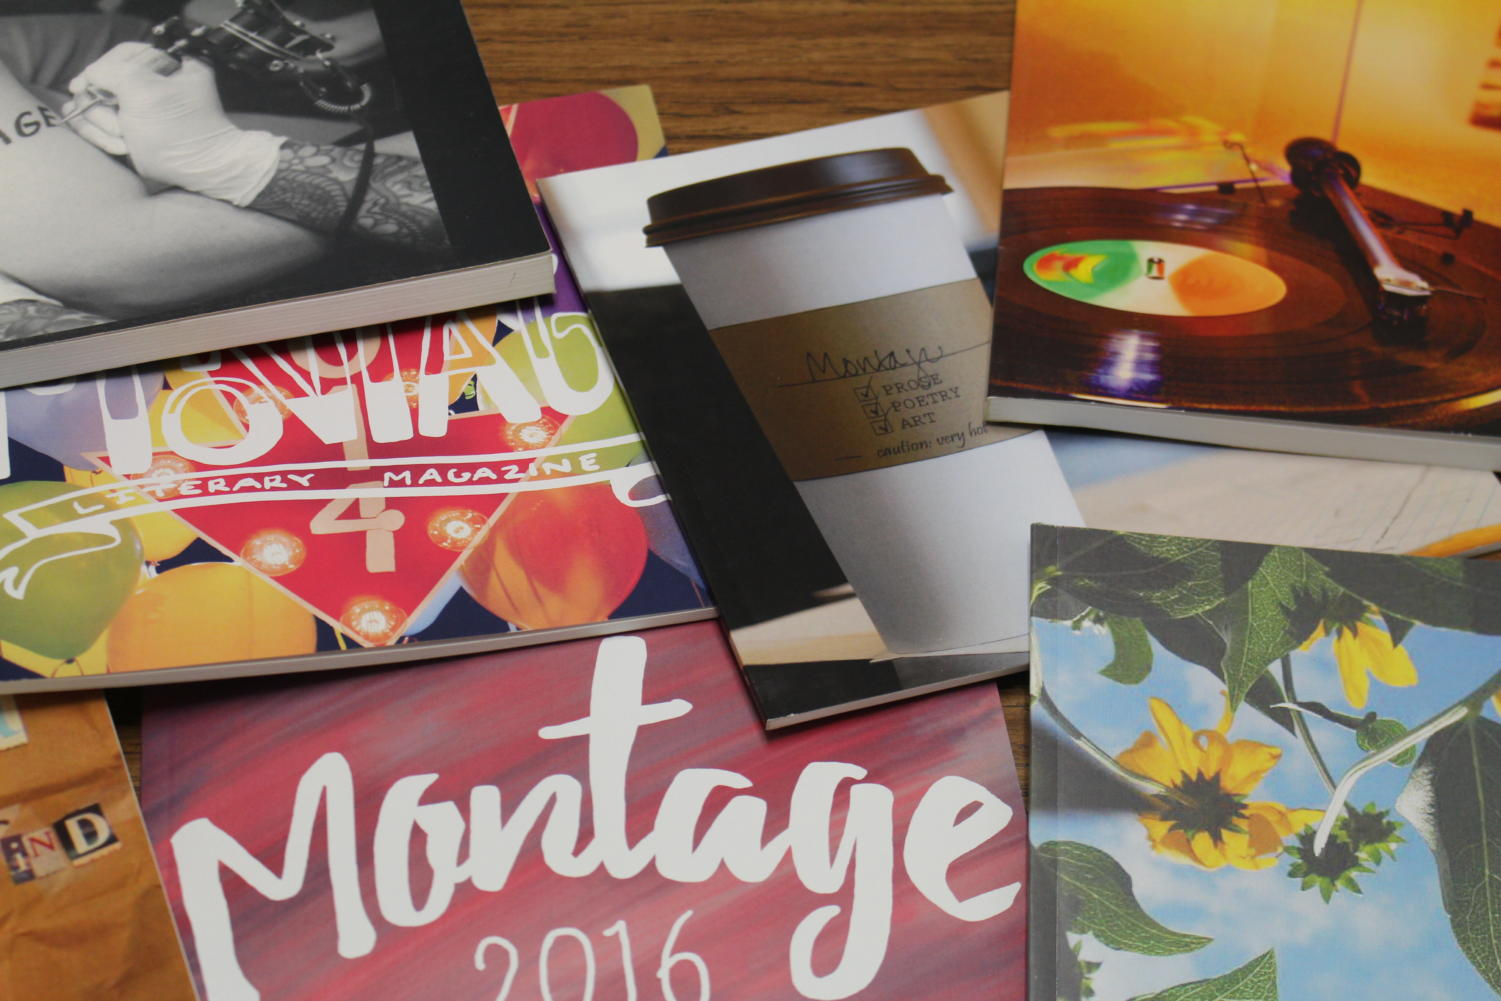 Montage publications through the years